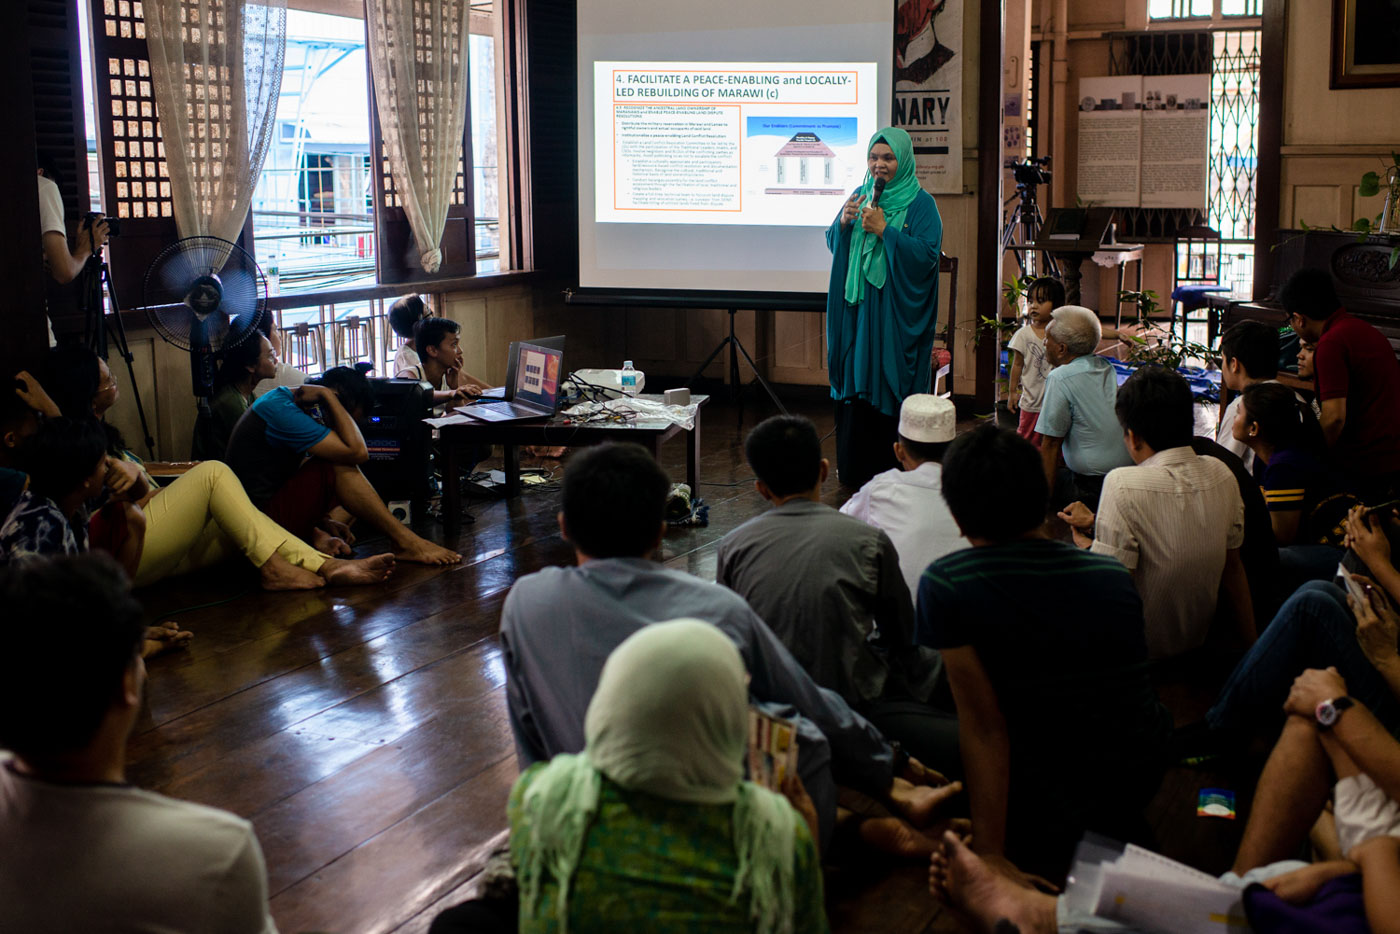 FORUM. Dr Potre Dirampatan-Diampuan shares her experiences in Marawi before fellow Muslims, and non-Muslims at Bahay Nakpil-Bautista in Quiapo, Manila. Photo by Eloisa Lopez/Rappler